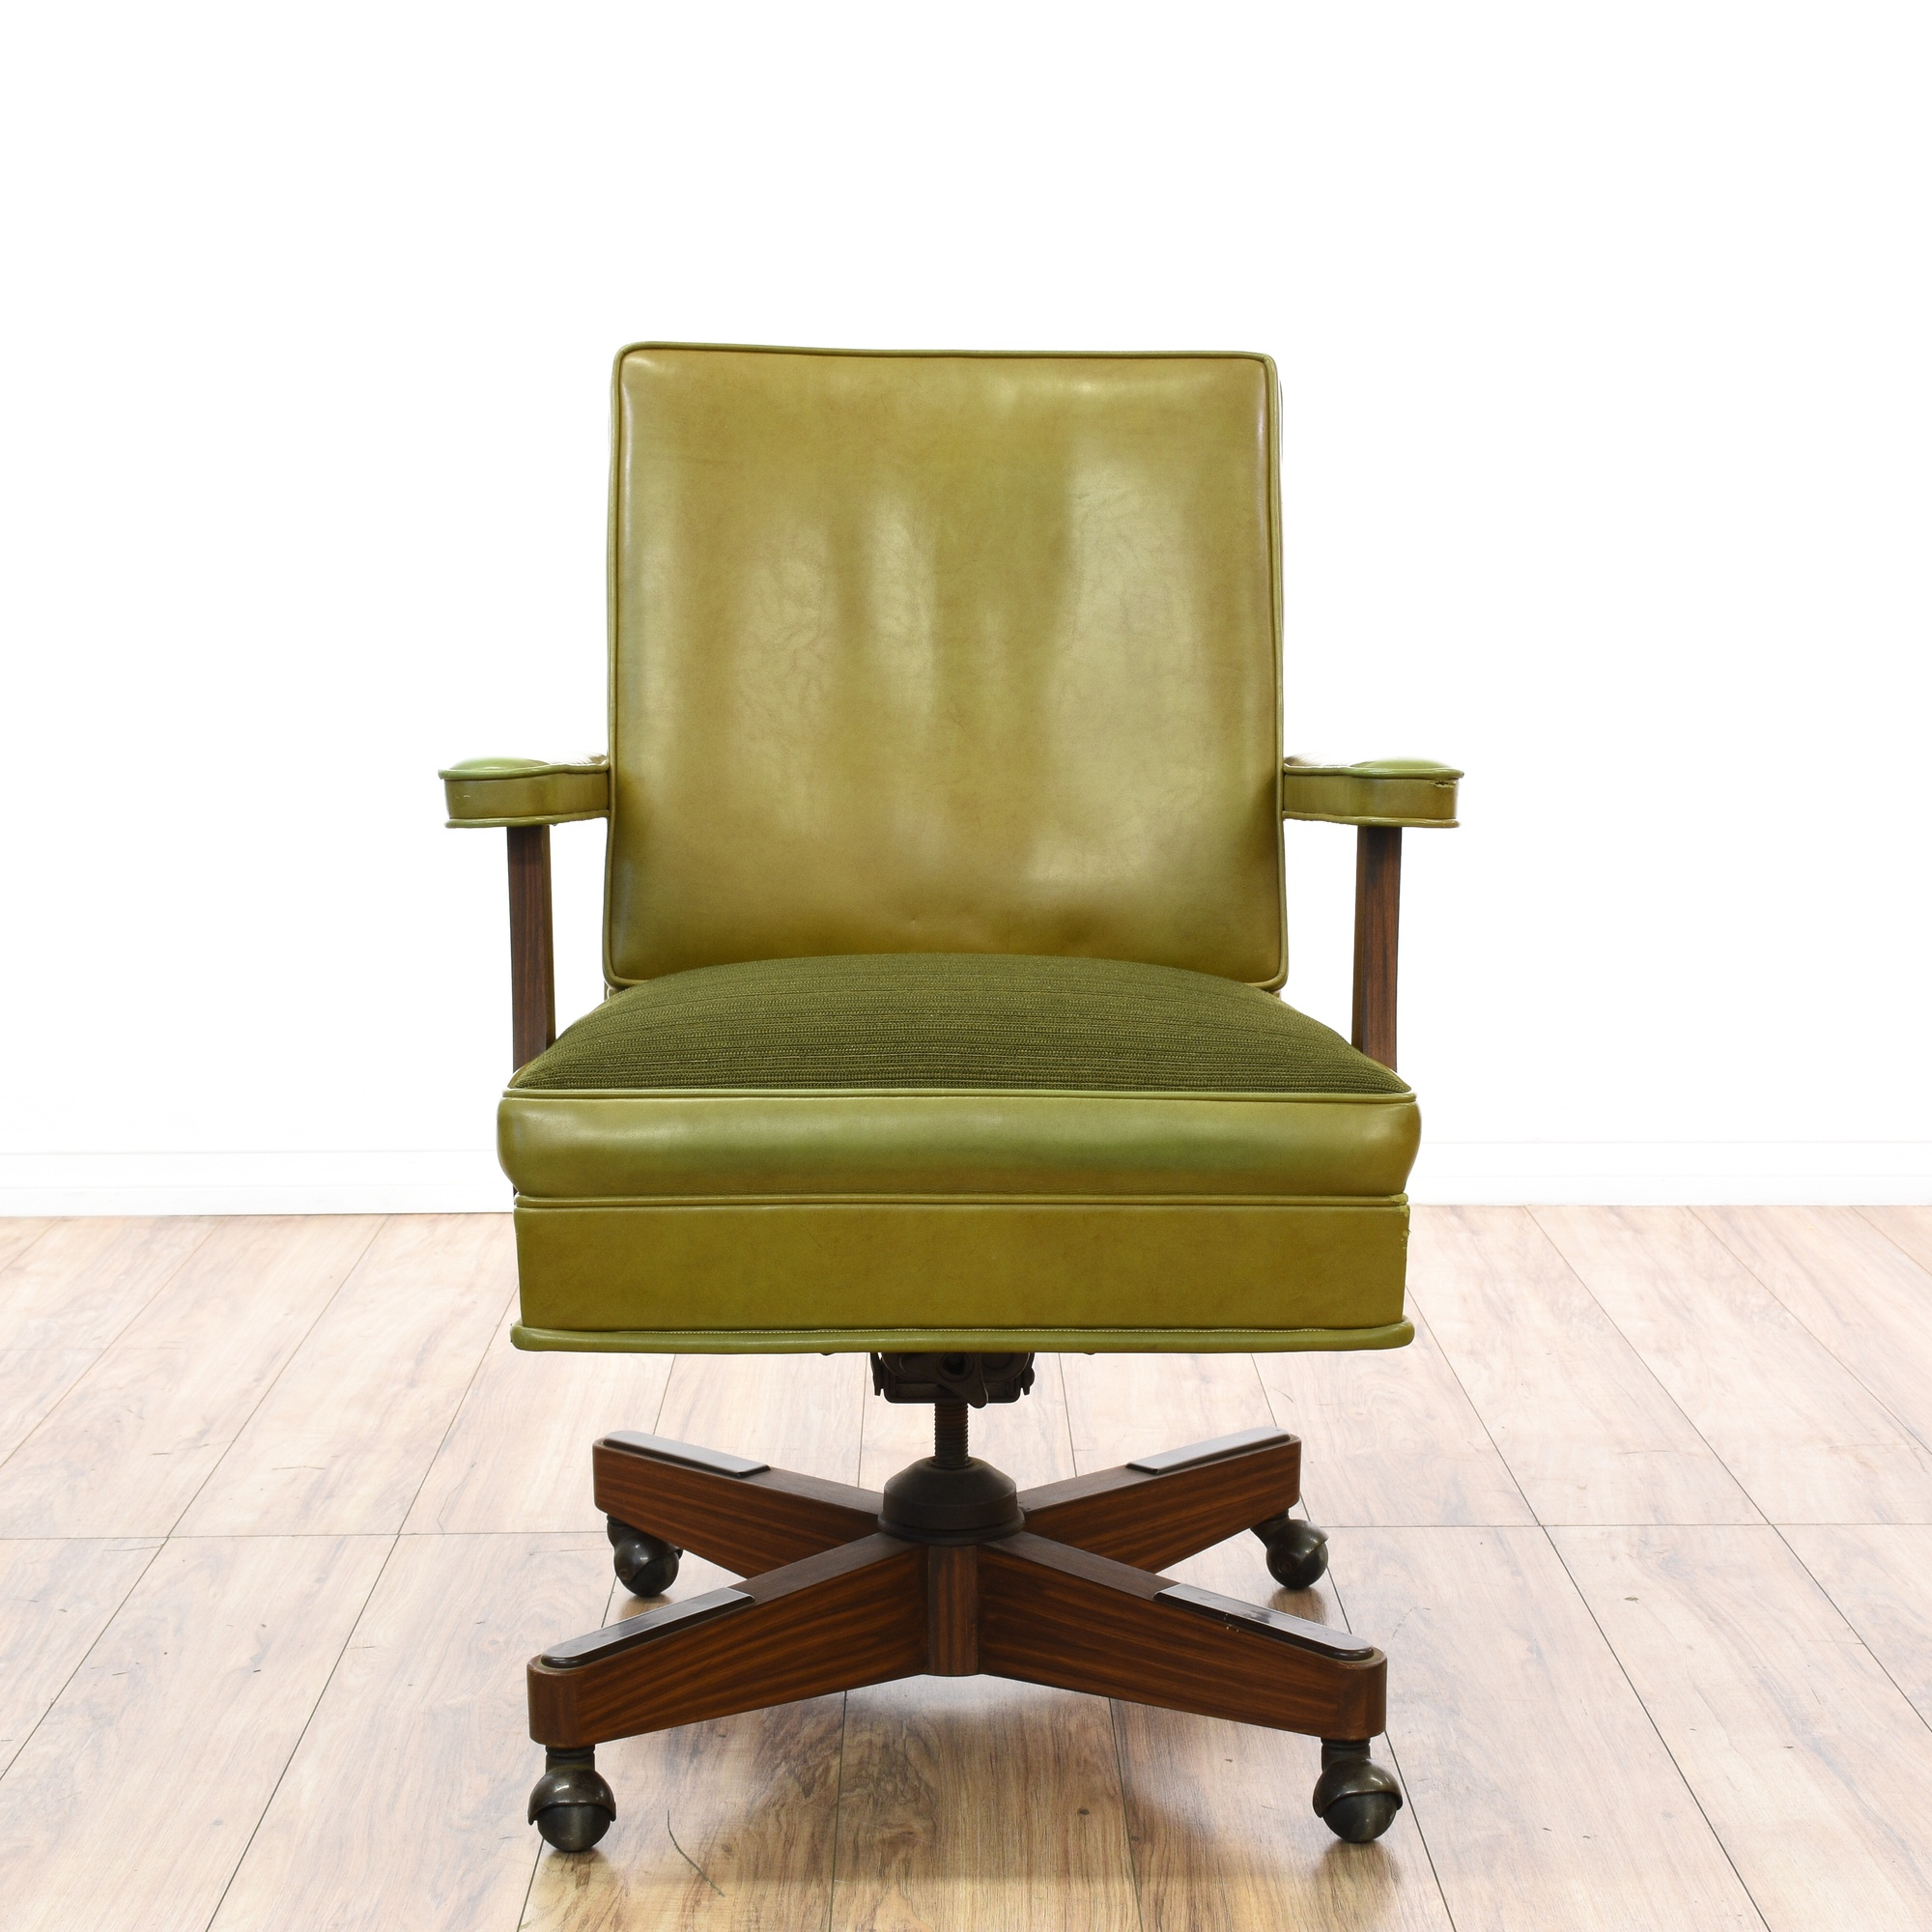 Retro Olive Green Vinyl Rolling fice Chair